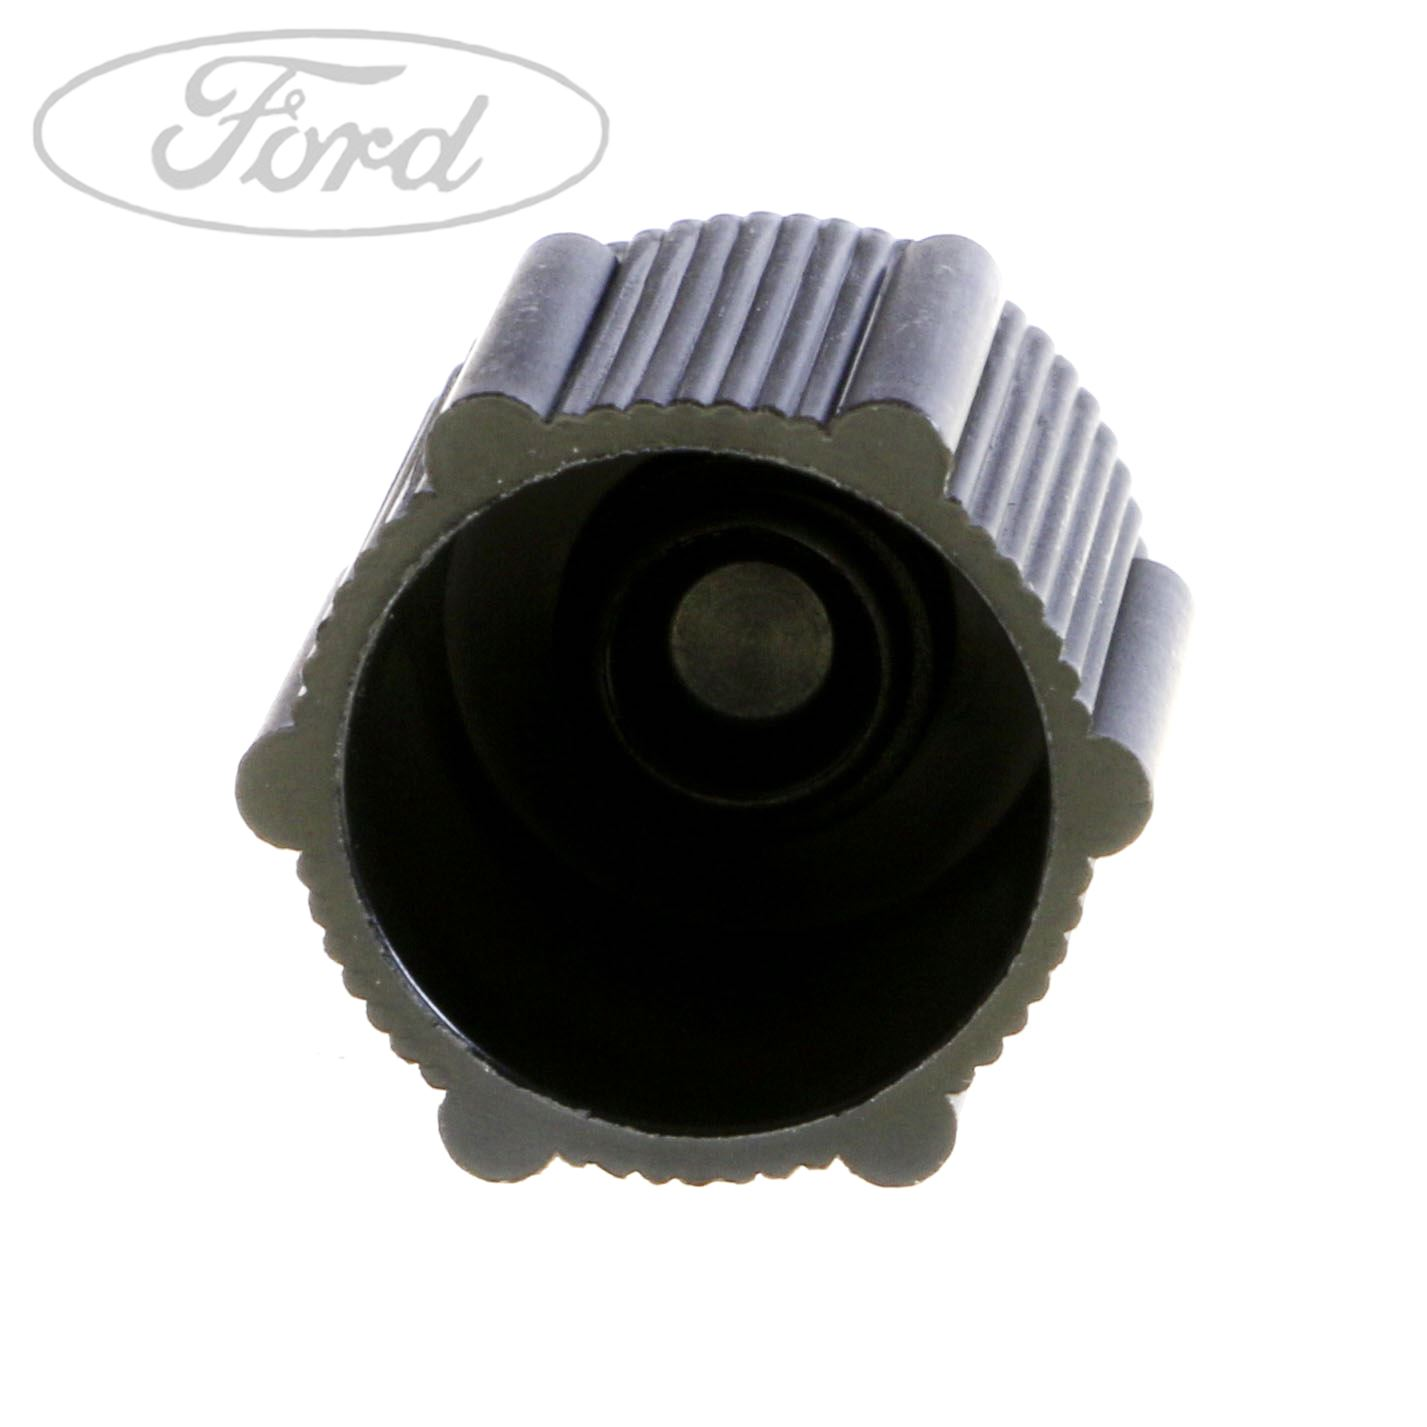 Details about Genuine Ford Focus Mondeo Transit Air Con System Low Pressure  Port Cap 4733721